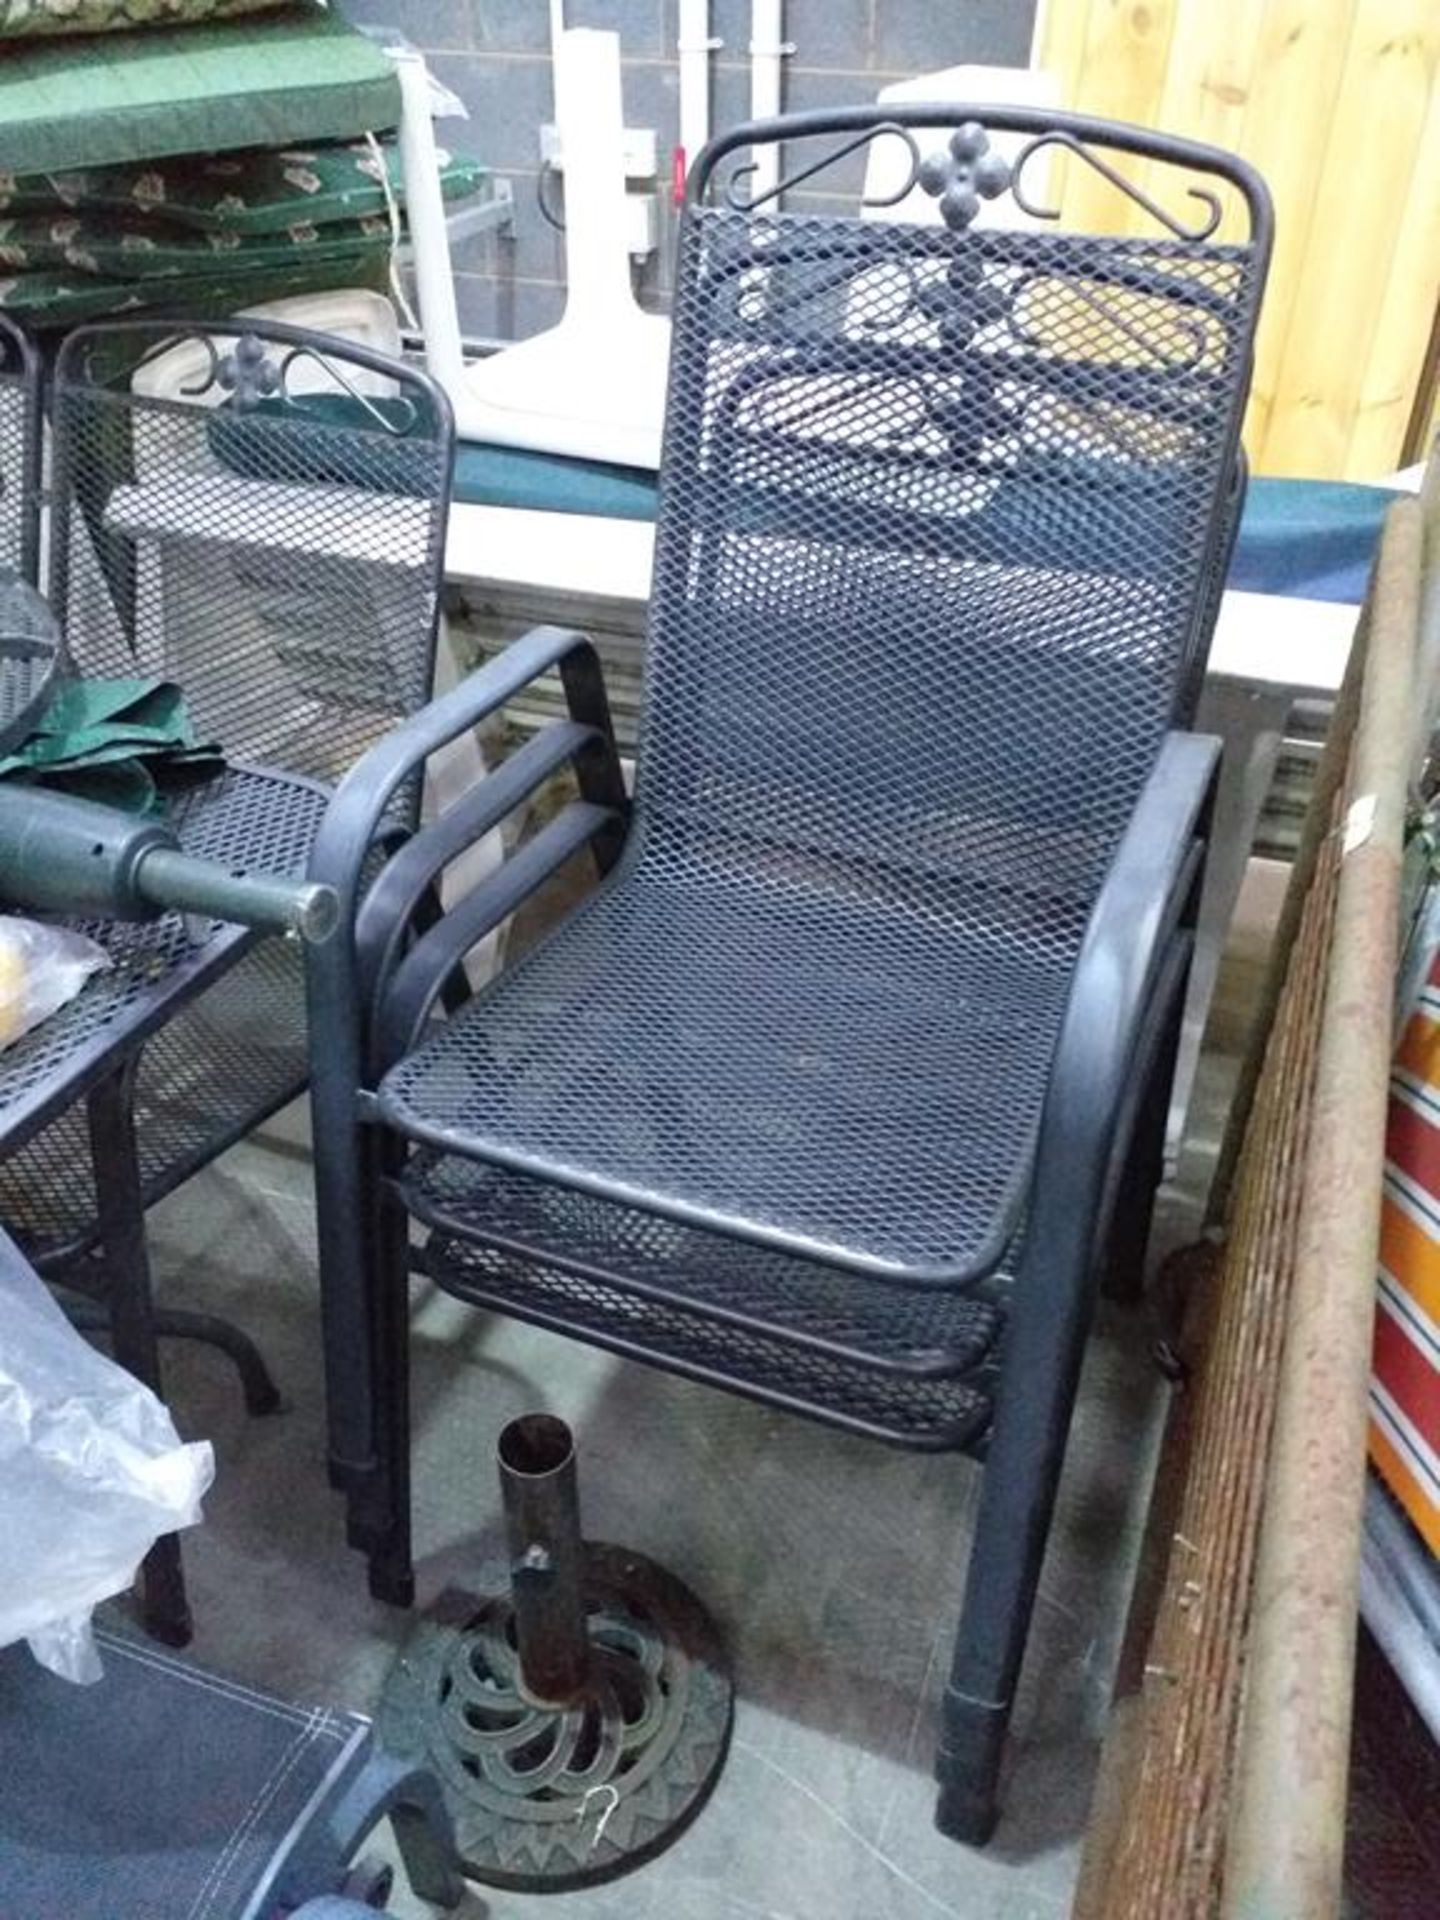 Lot 298 - Metal Garden Tables, a Twin Swing Chair and Chairs